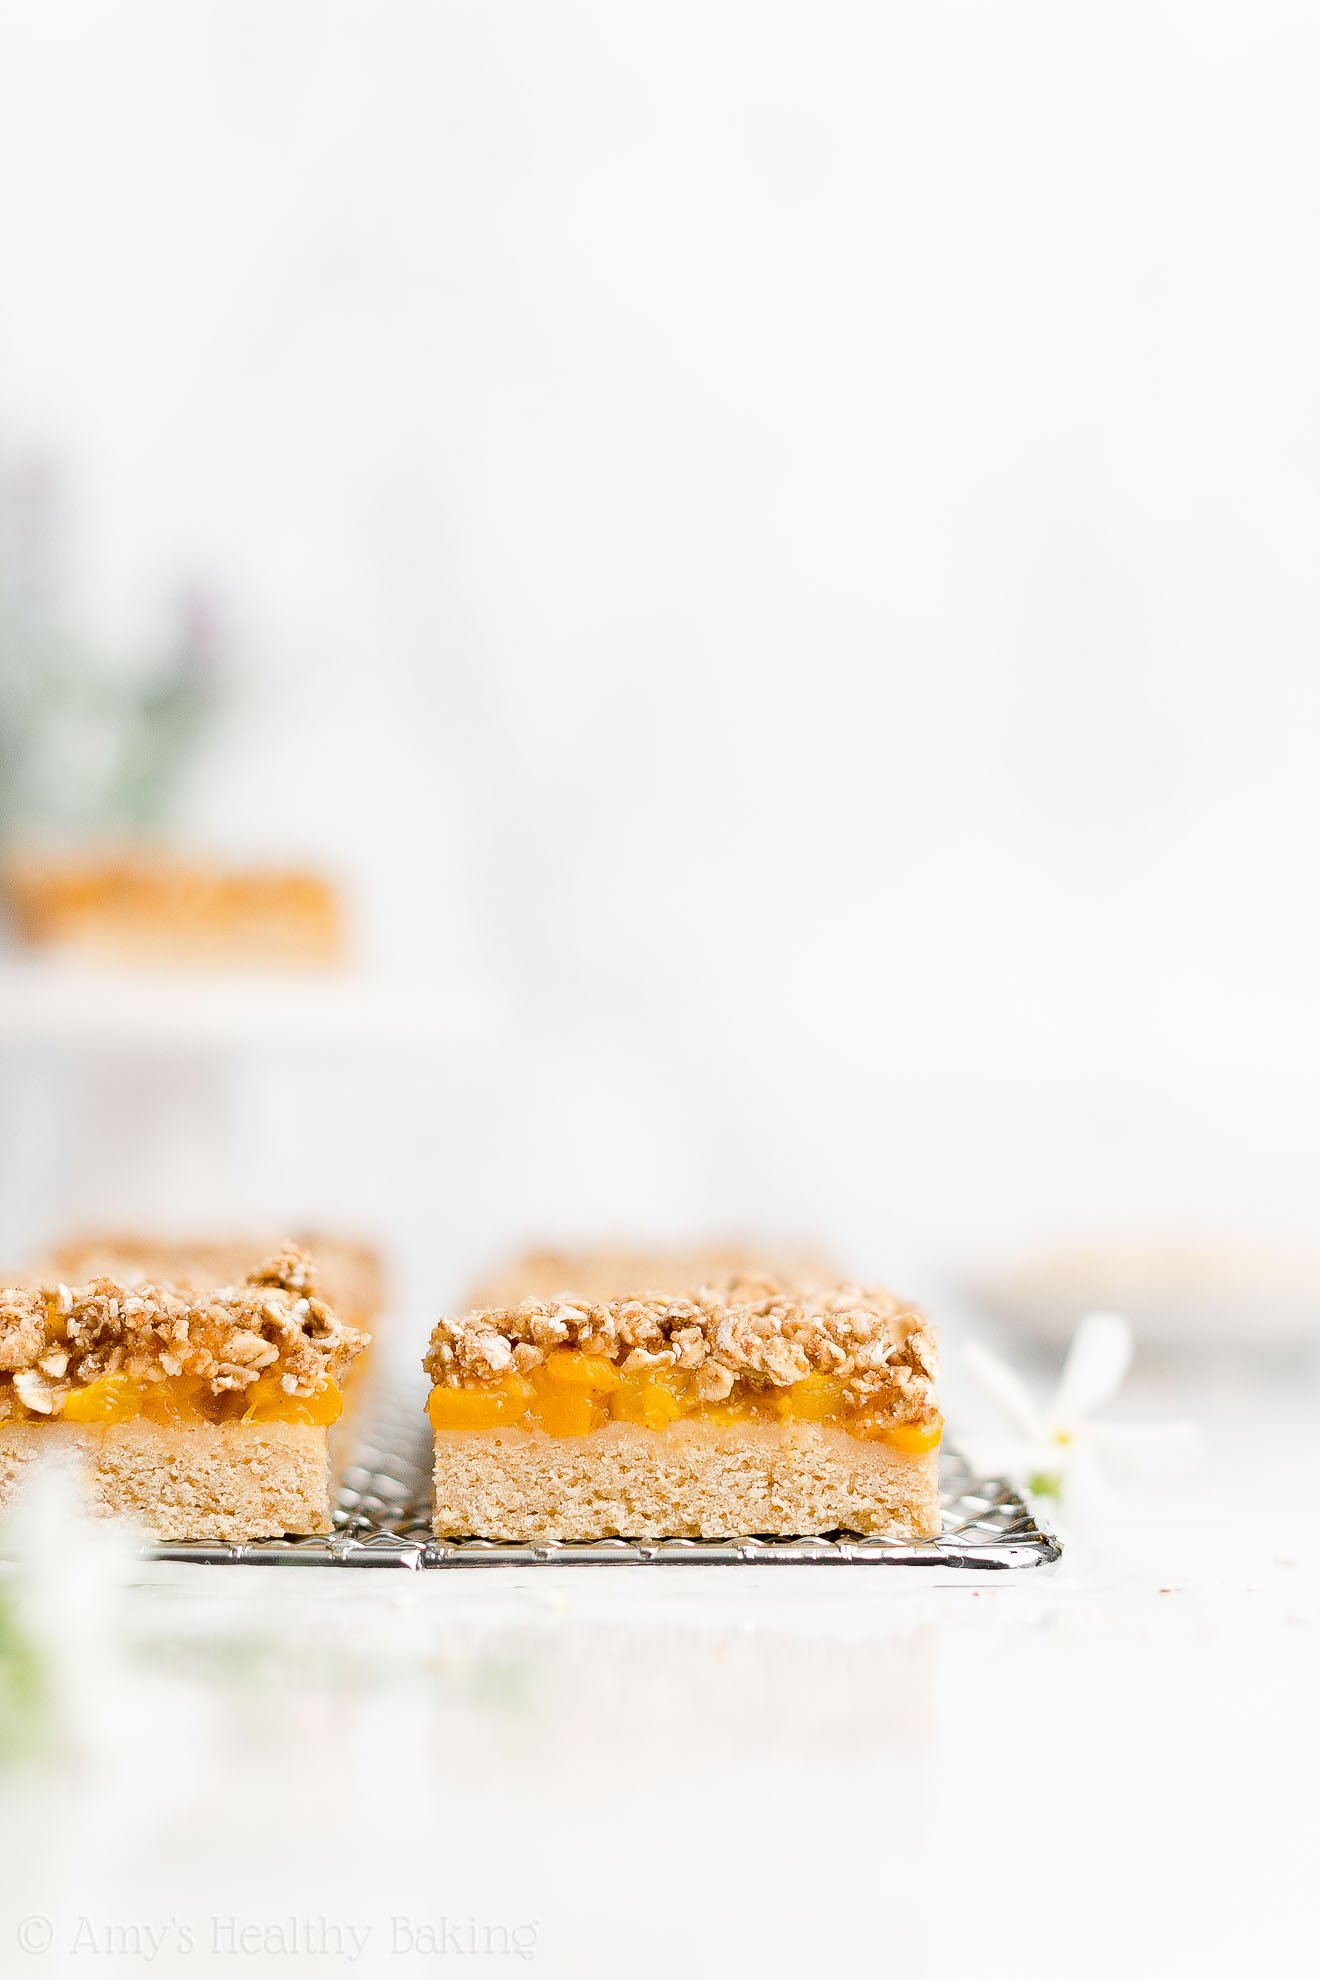 Easy Healthy Clean Eating Low Fat Vegan Dairy Free Fresh Peach Crumble Bars